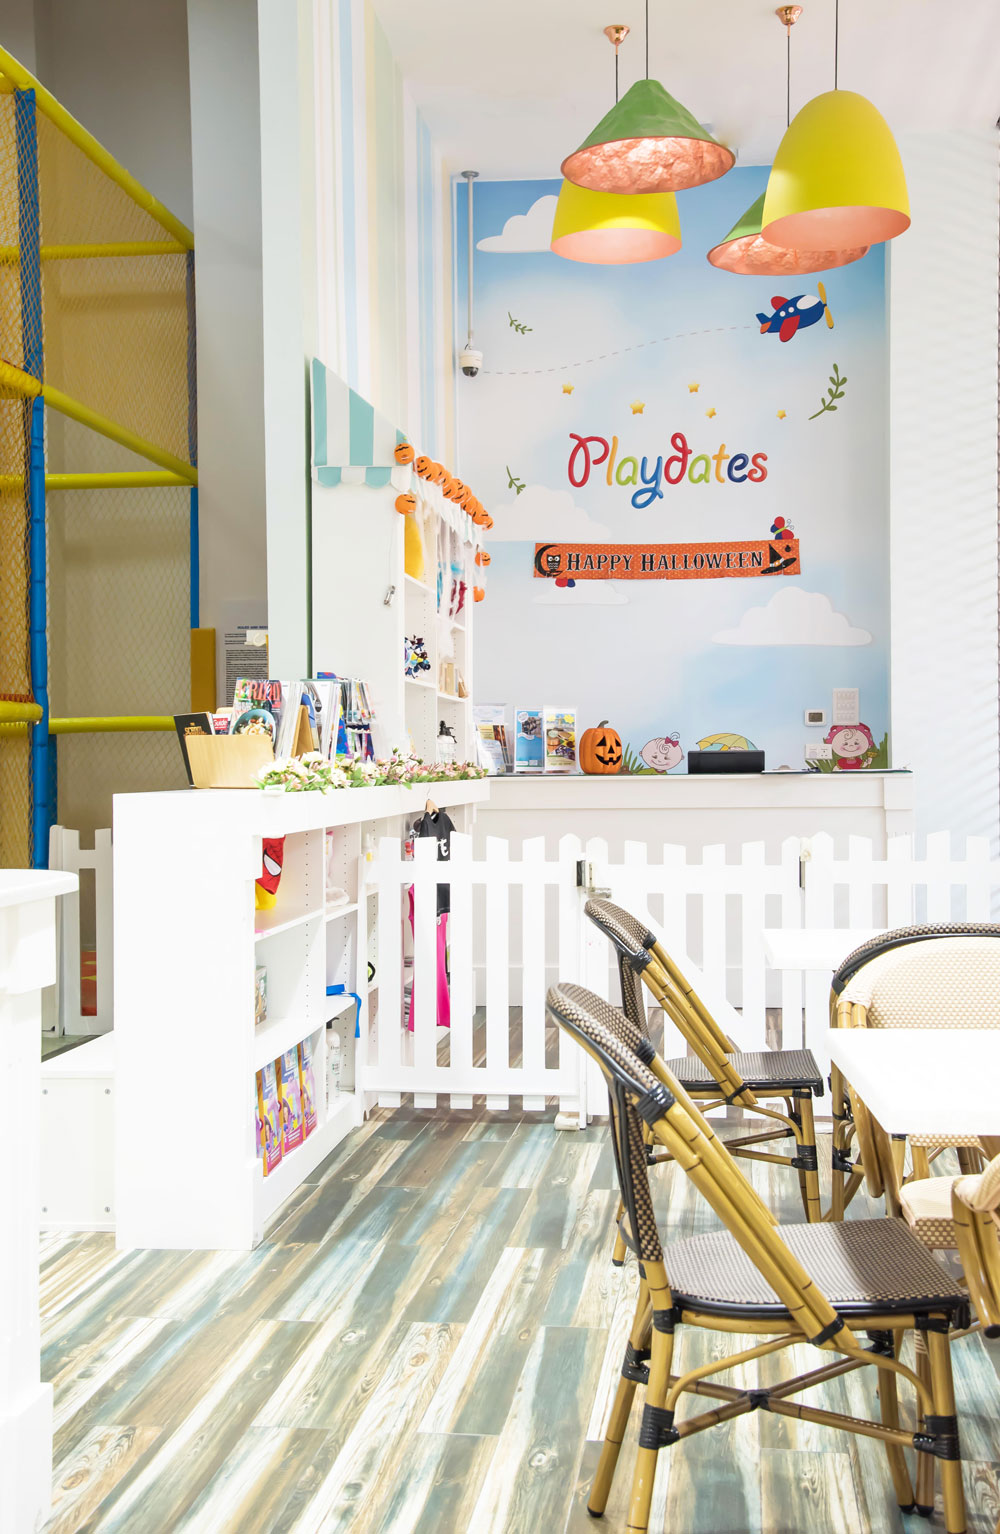 moon-kids-project-playdates-coffee-shop